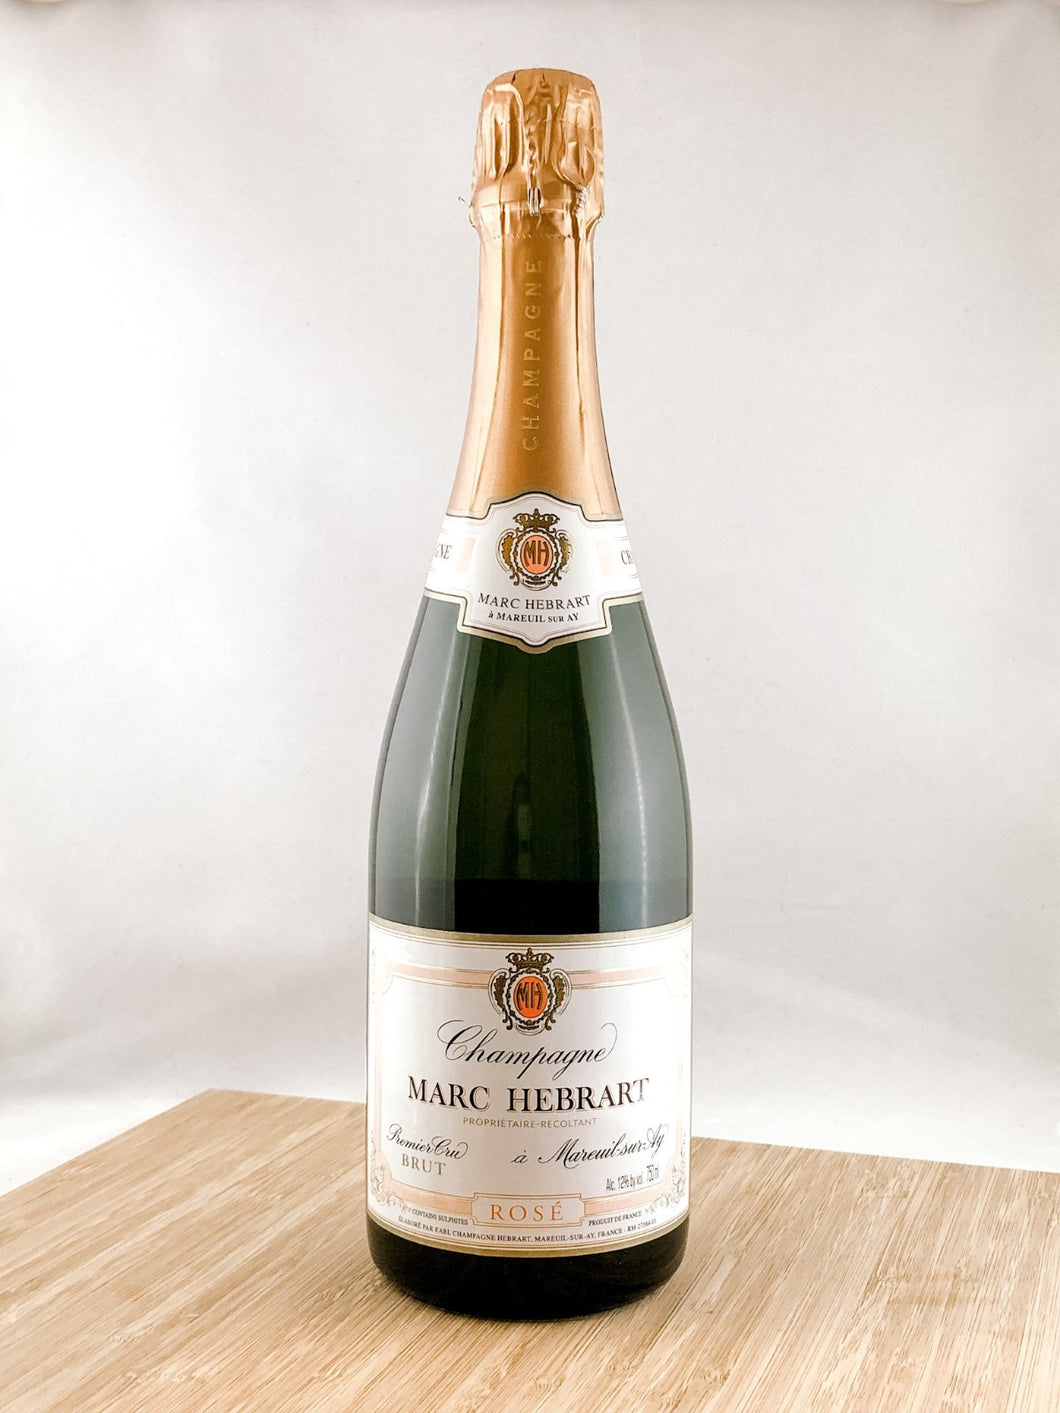 marc hebrart champagne, part of our champagne club and gift ideas